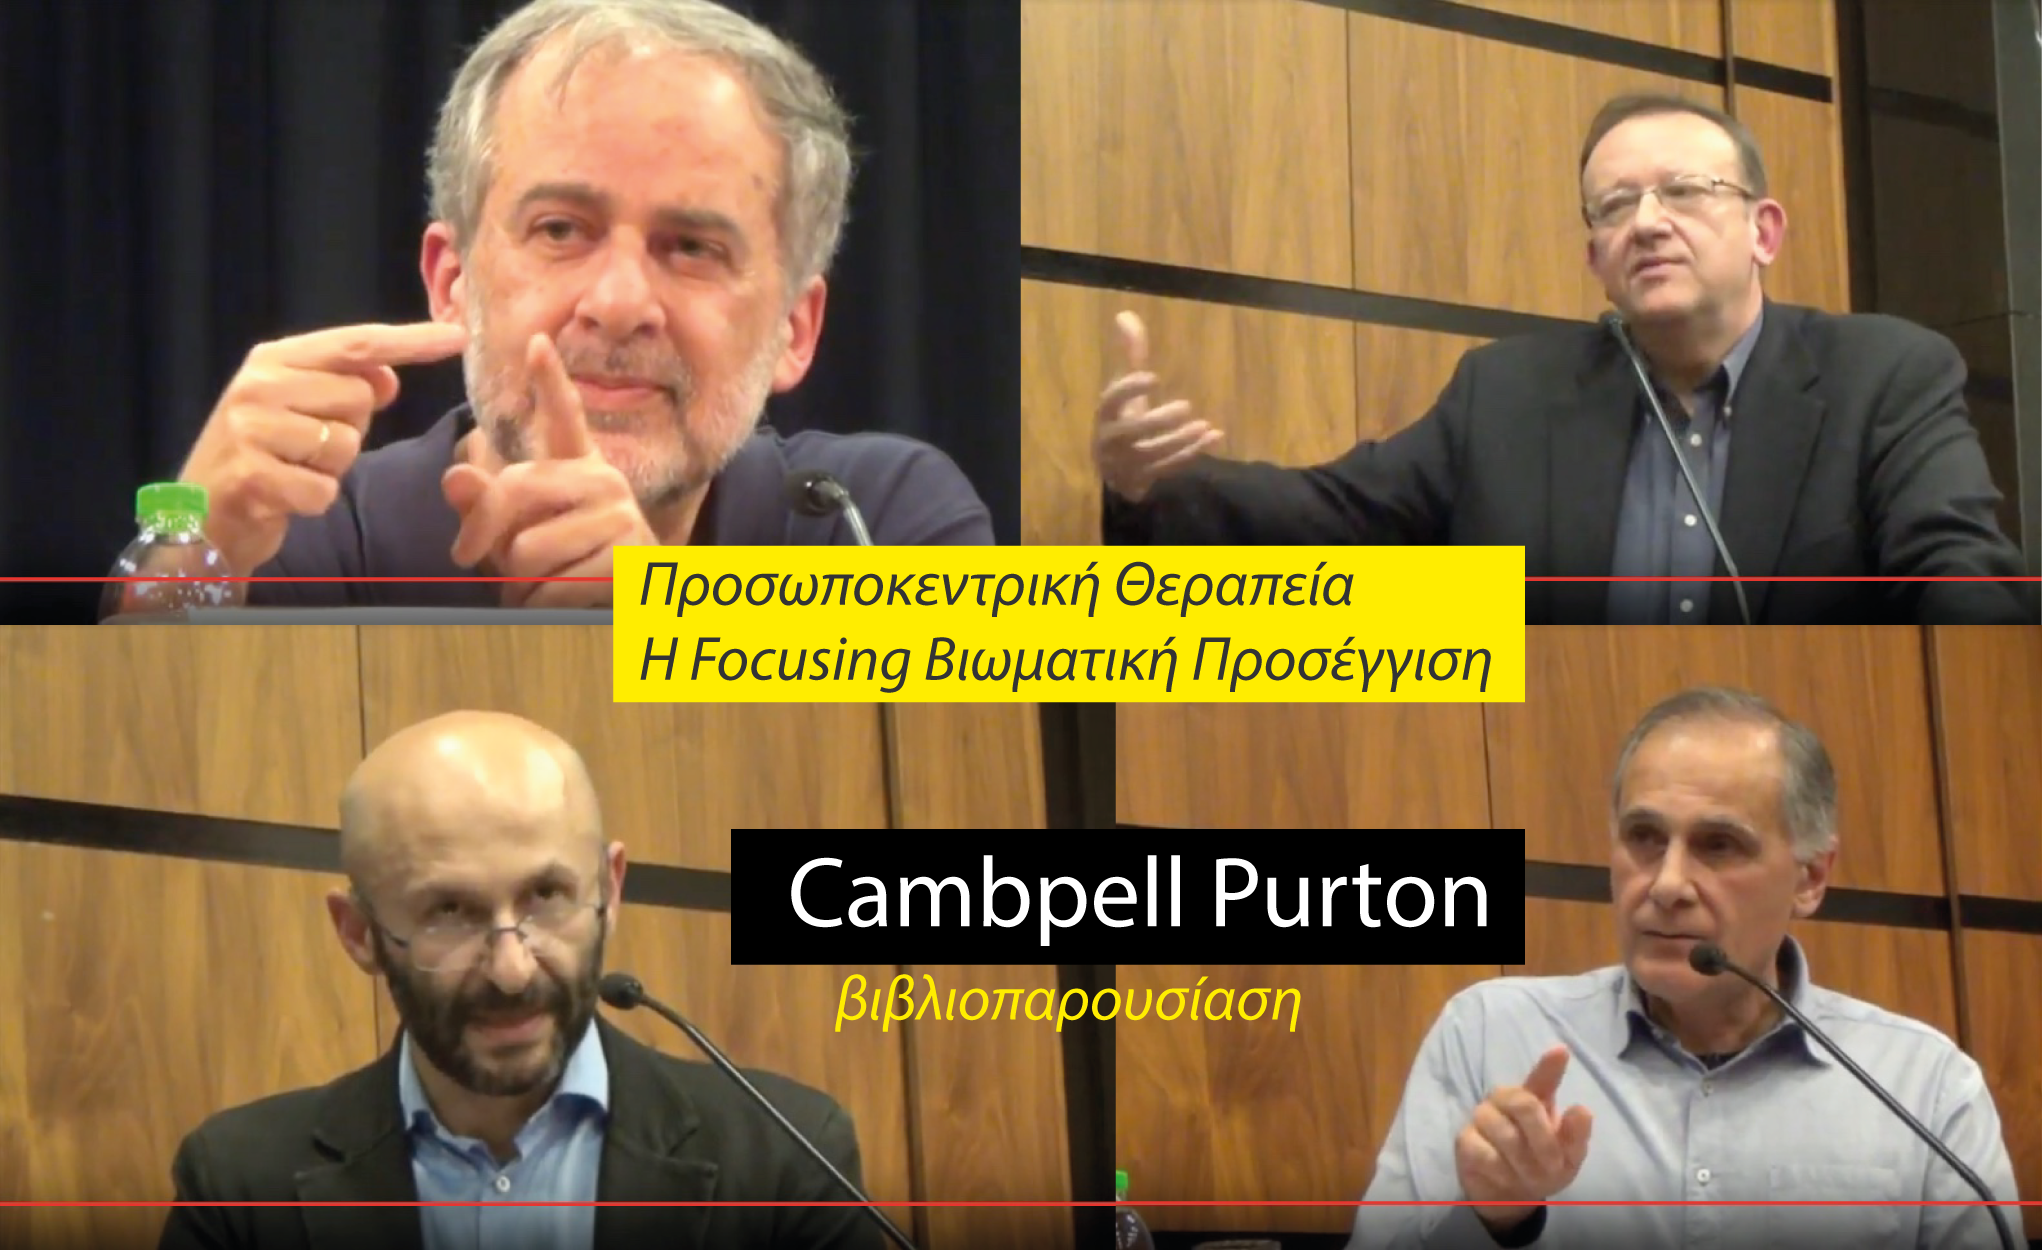 Cambpell Purton Book 01